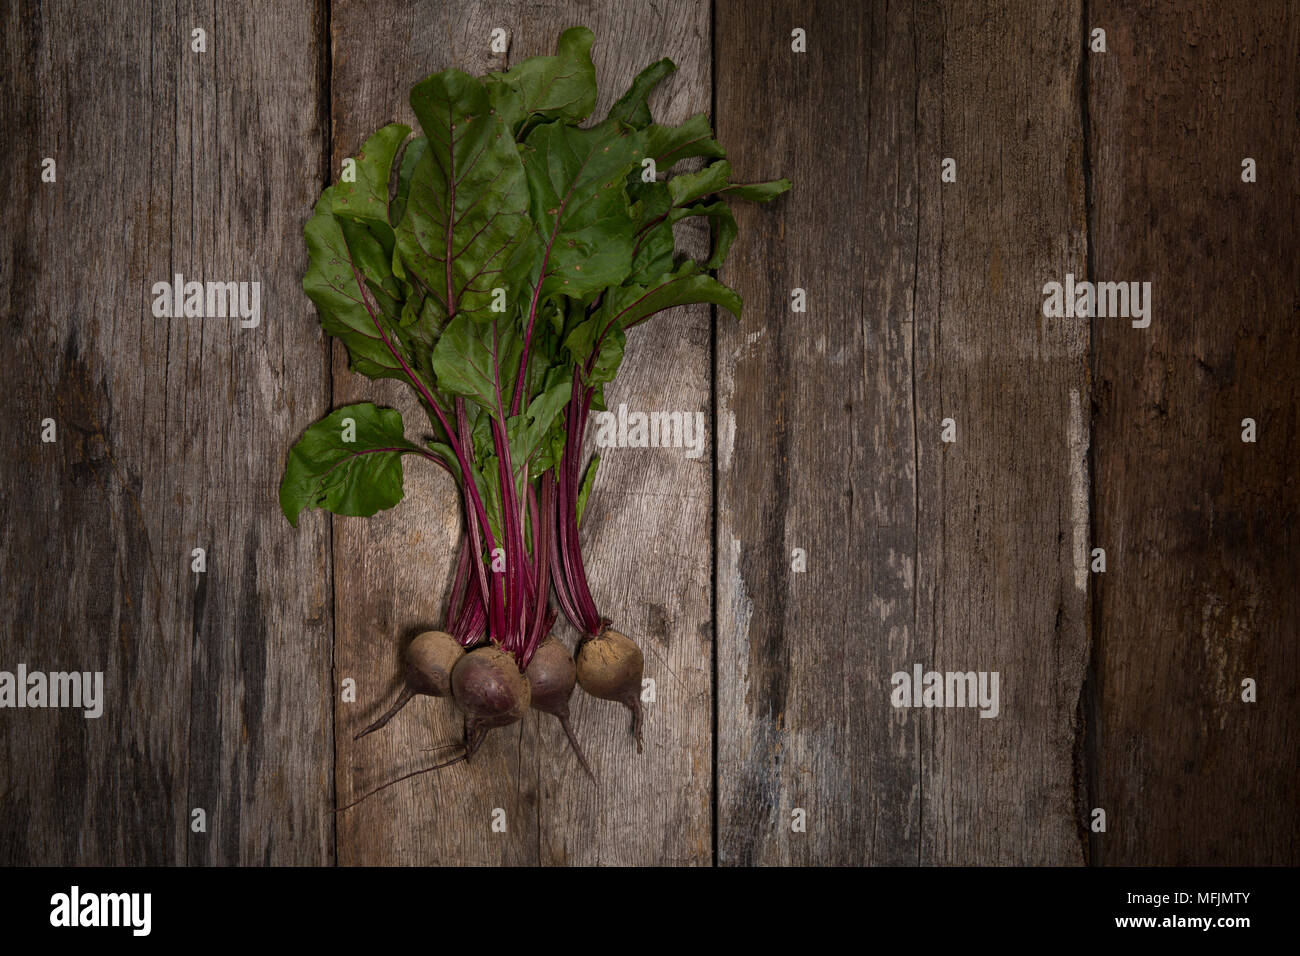 Still life photography taken in studio of beets on a rustic, wooden background.  Photo by Beth Hall - Stock Image